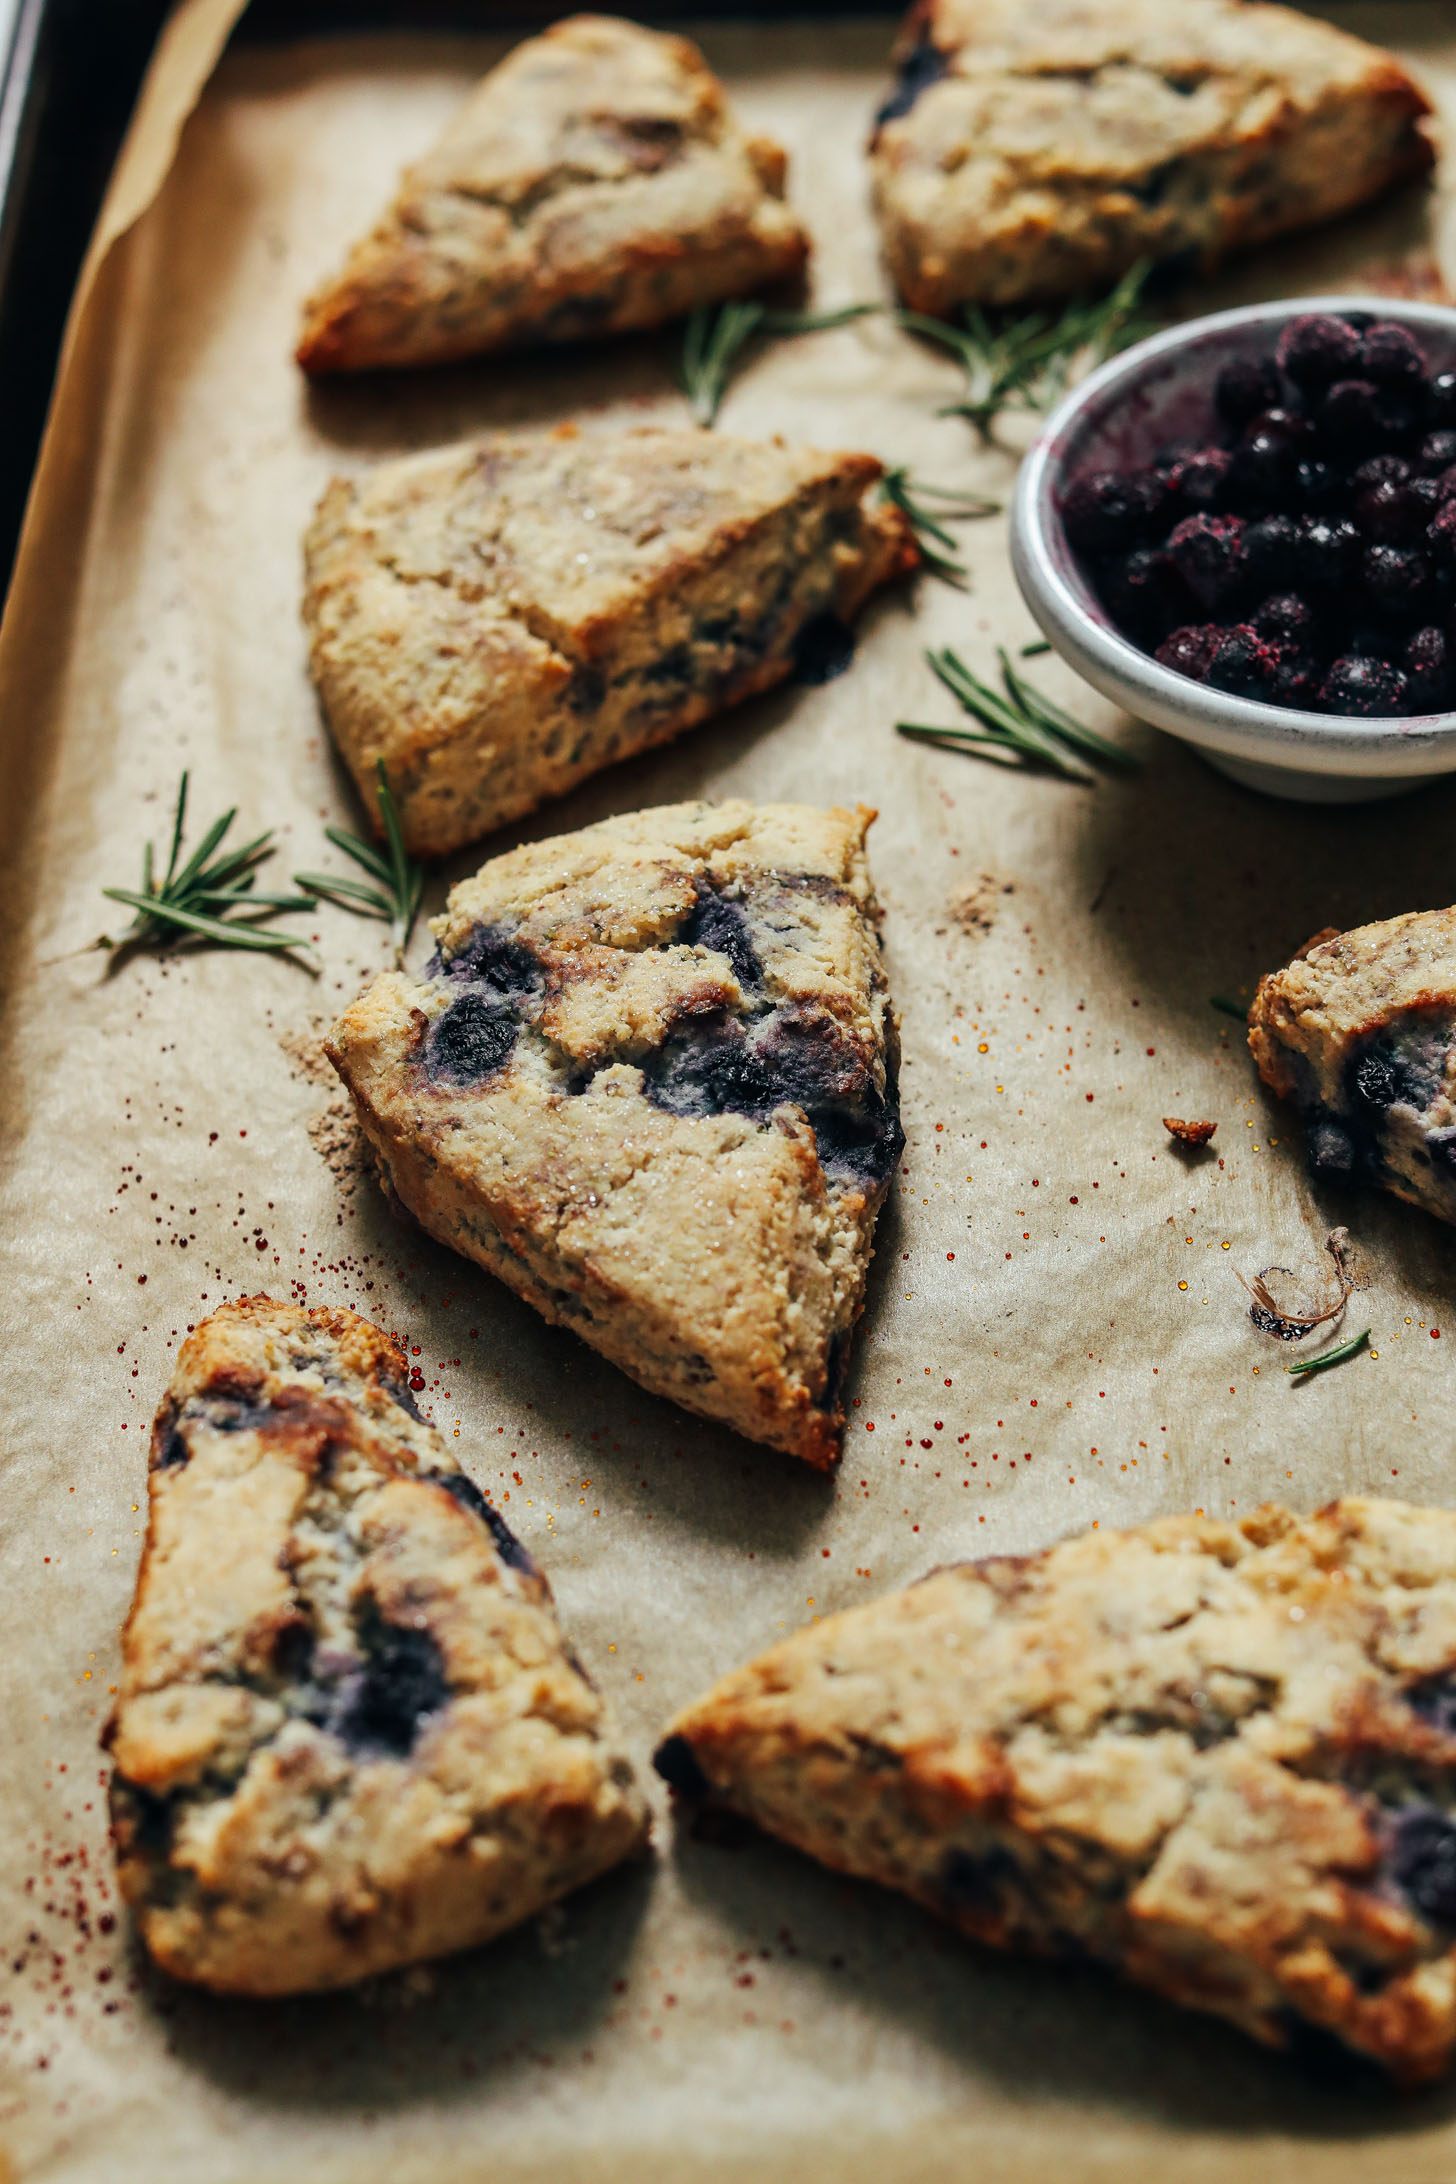 Parchment-lined baking sheet of flaky Gluten Free Scones